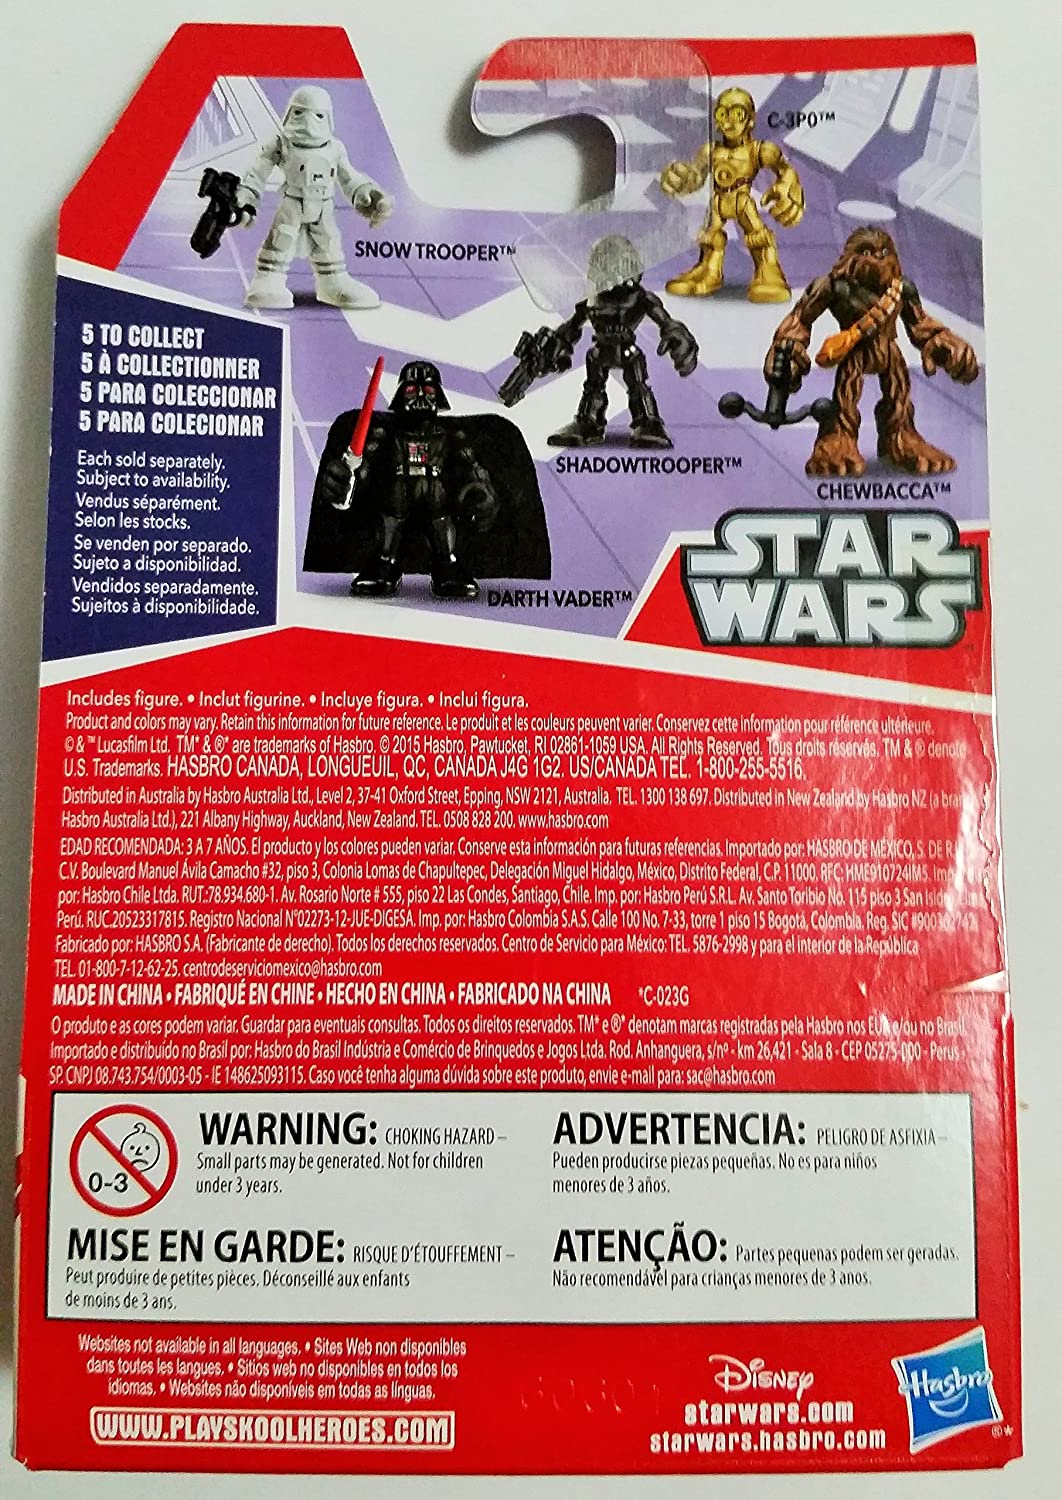 Amazon.com: Star Wars Disney Galactic Heroes Shadow Trooper Playskool: Toys & Games